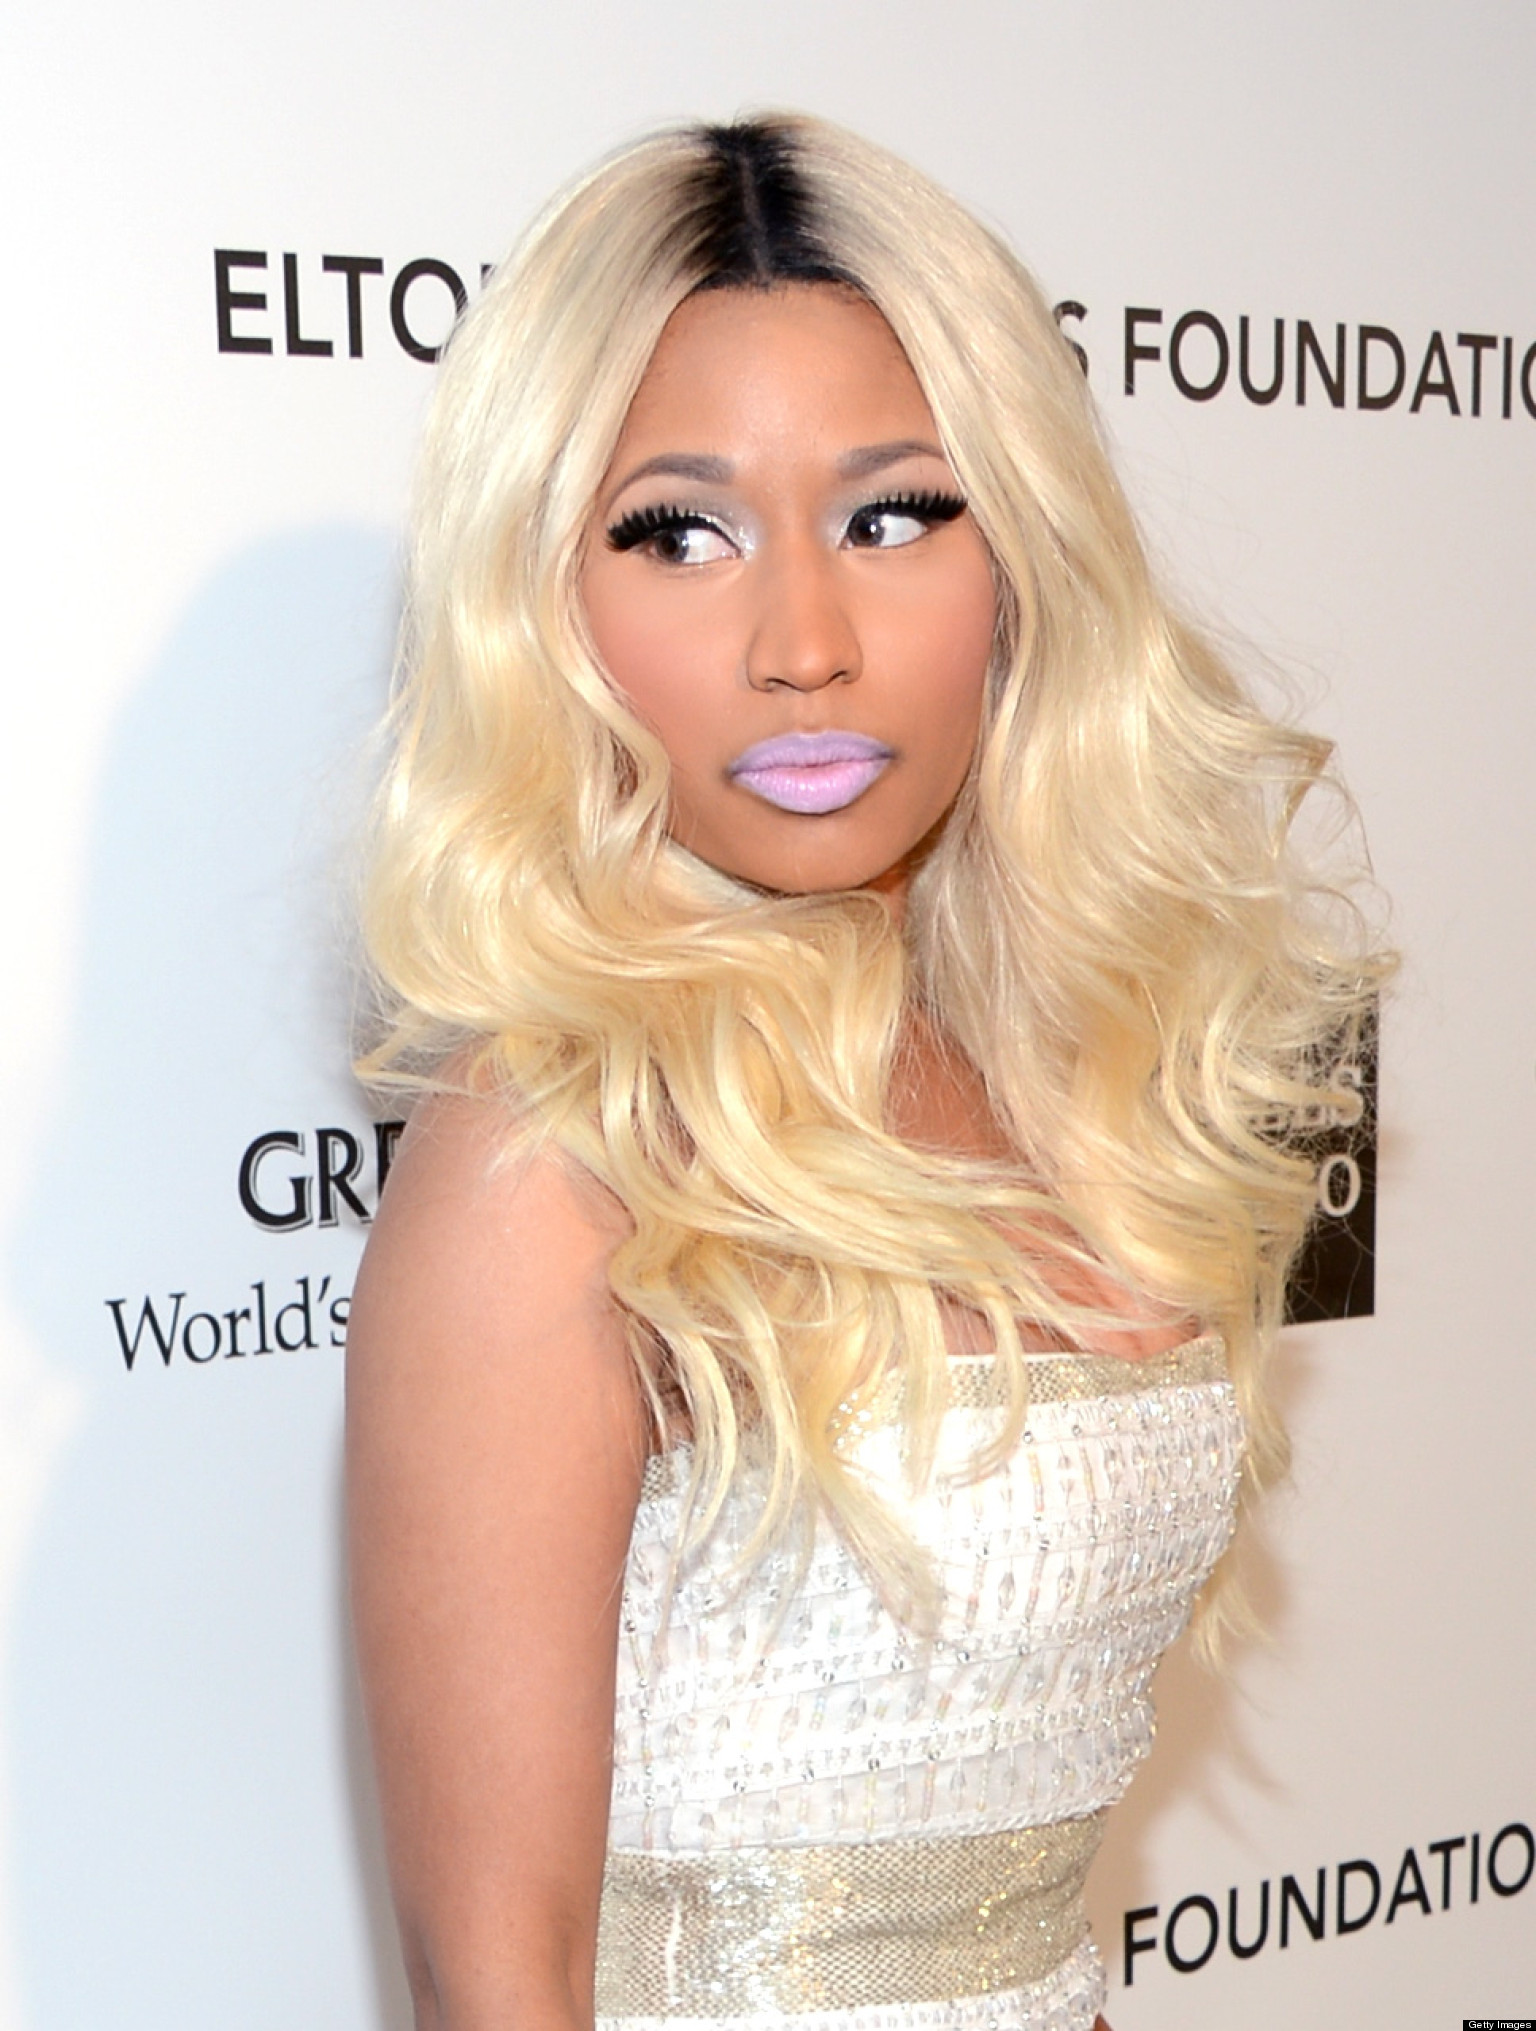 Nicki minaj plastic surgery singer settles confusion over surgery nicki minaj plastic surgery singer settles confusion over surgery rumors huffpost voltagebd Gallery